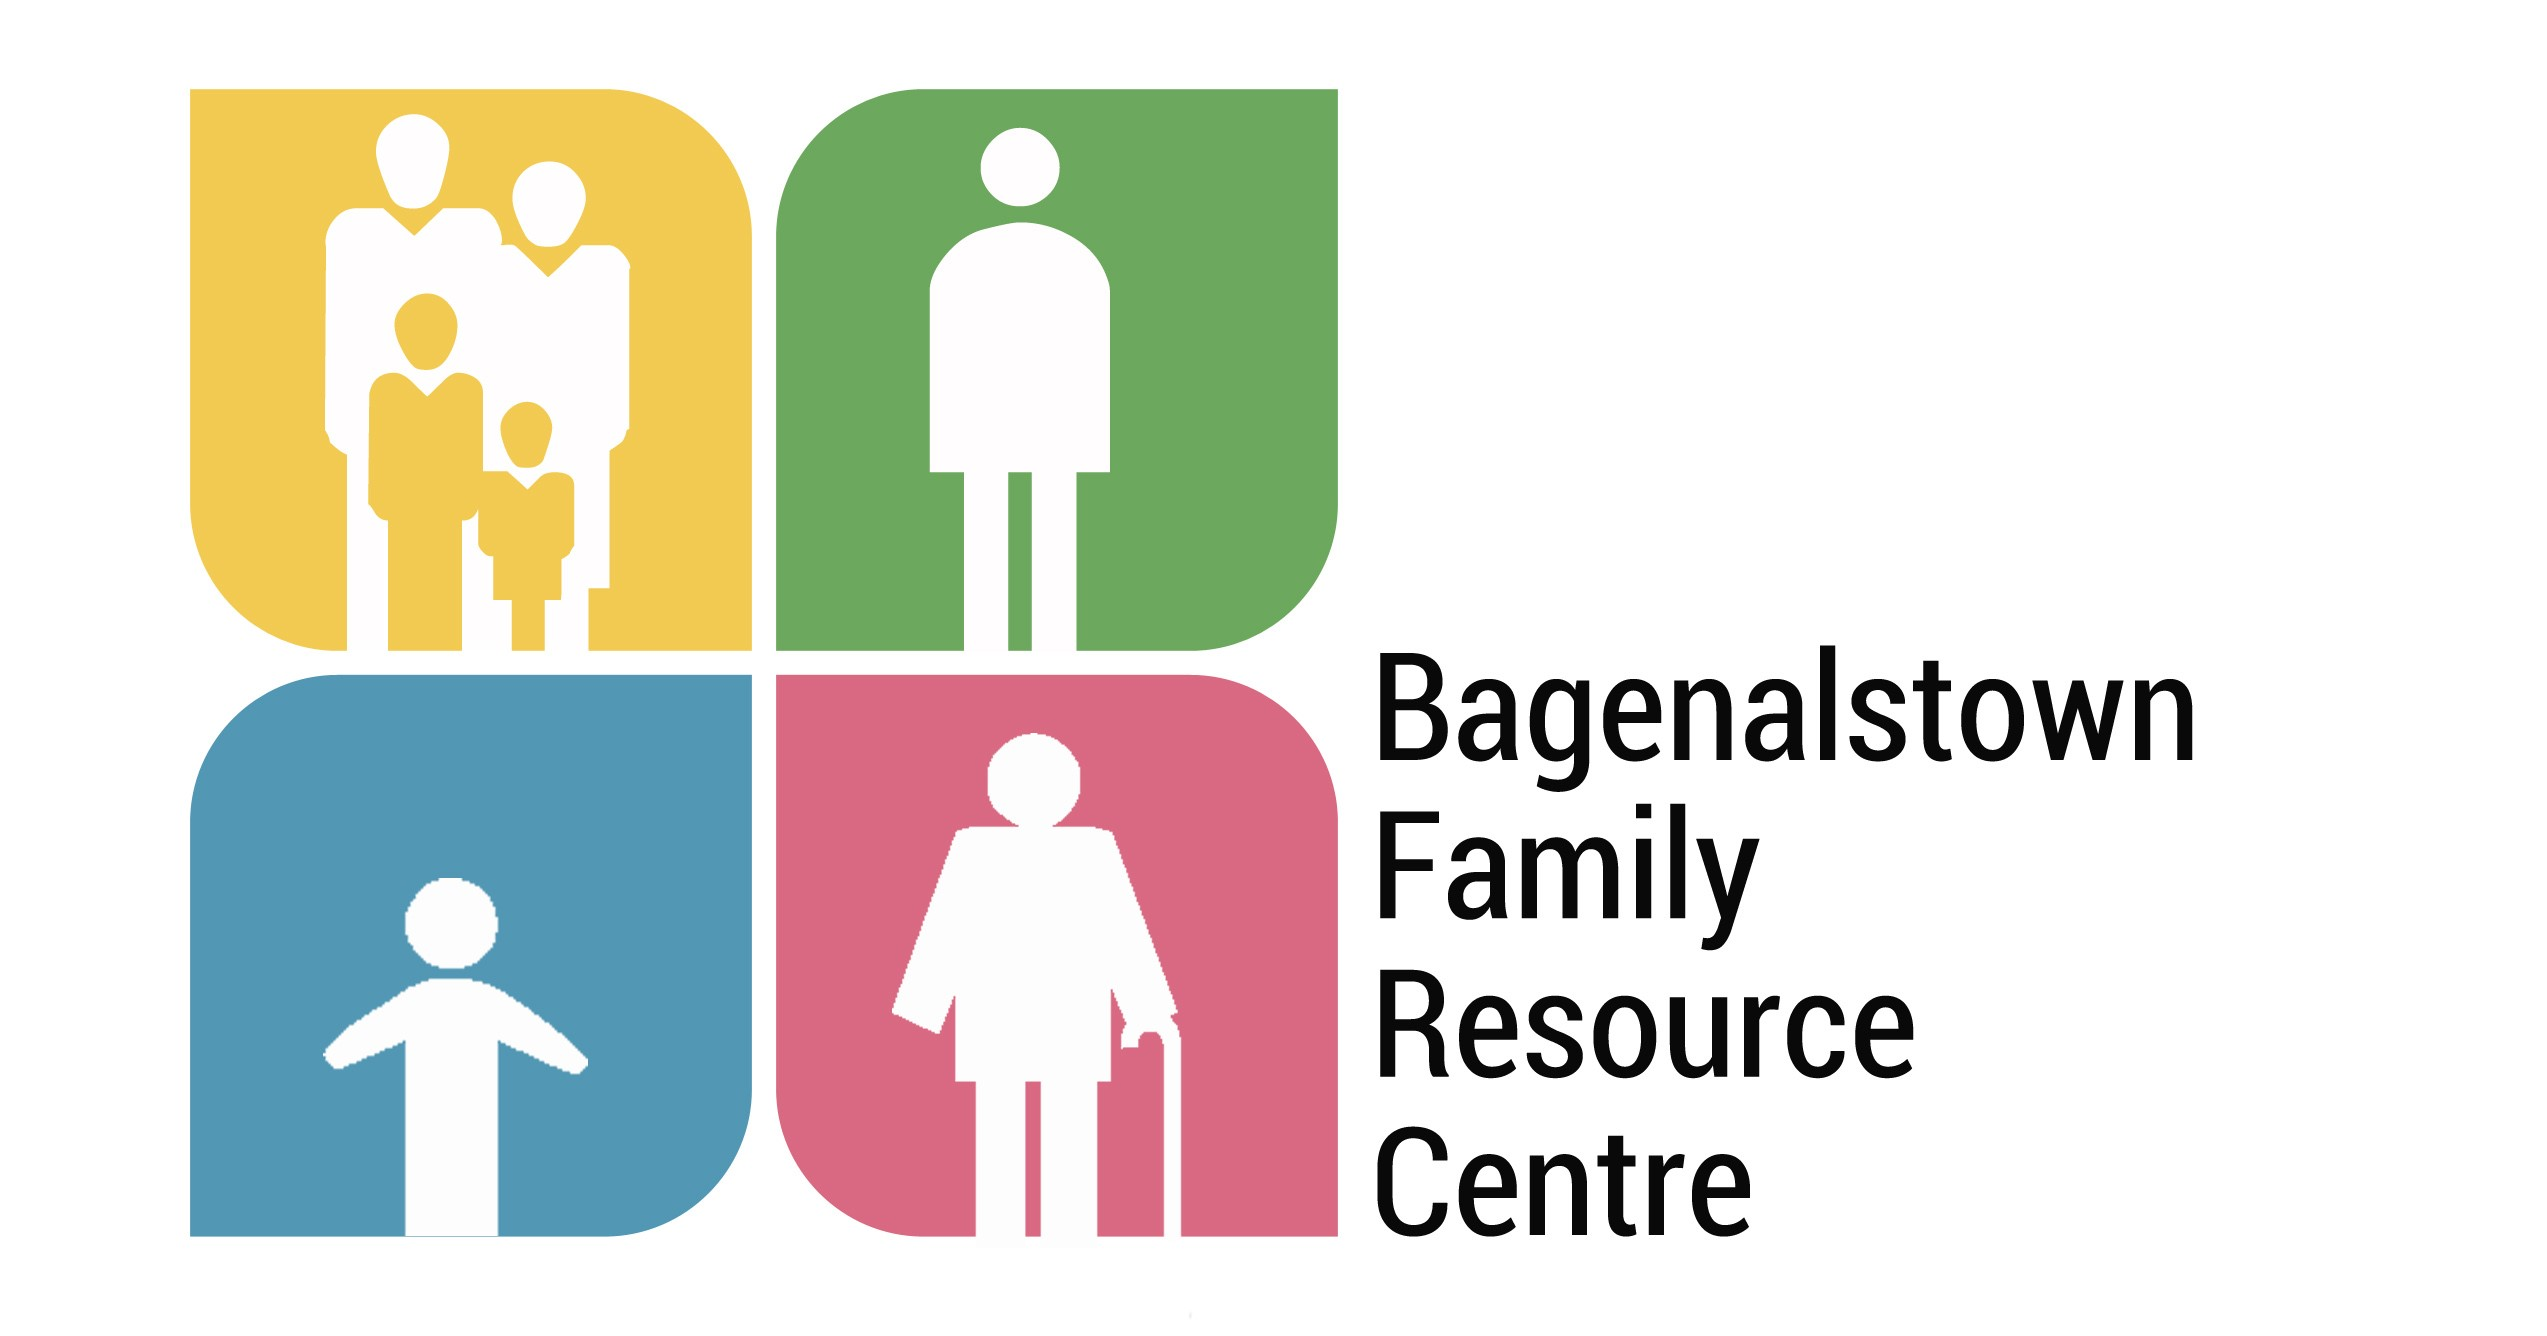 Bagenalstown Family Resource Centre